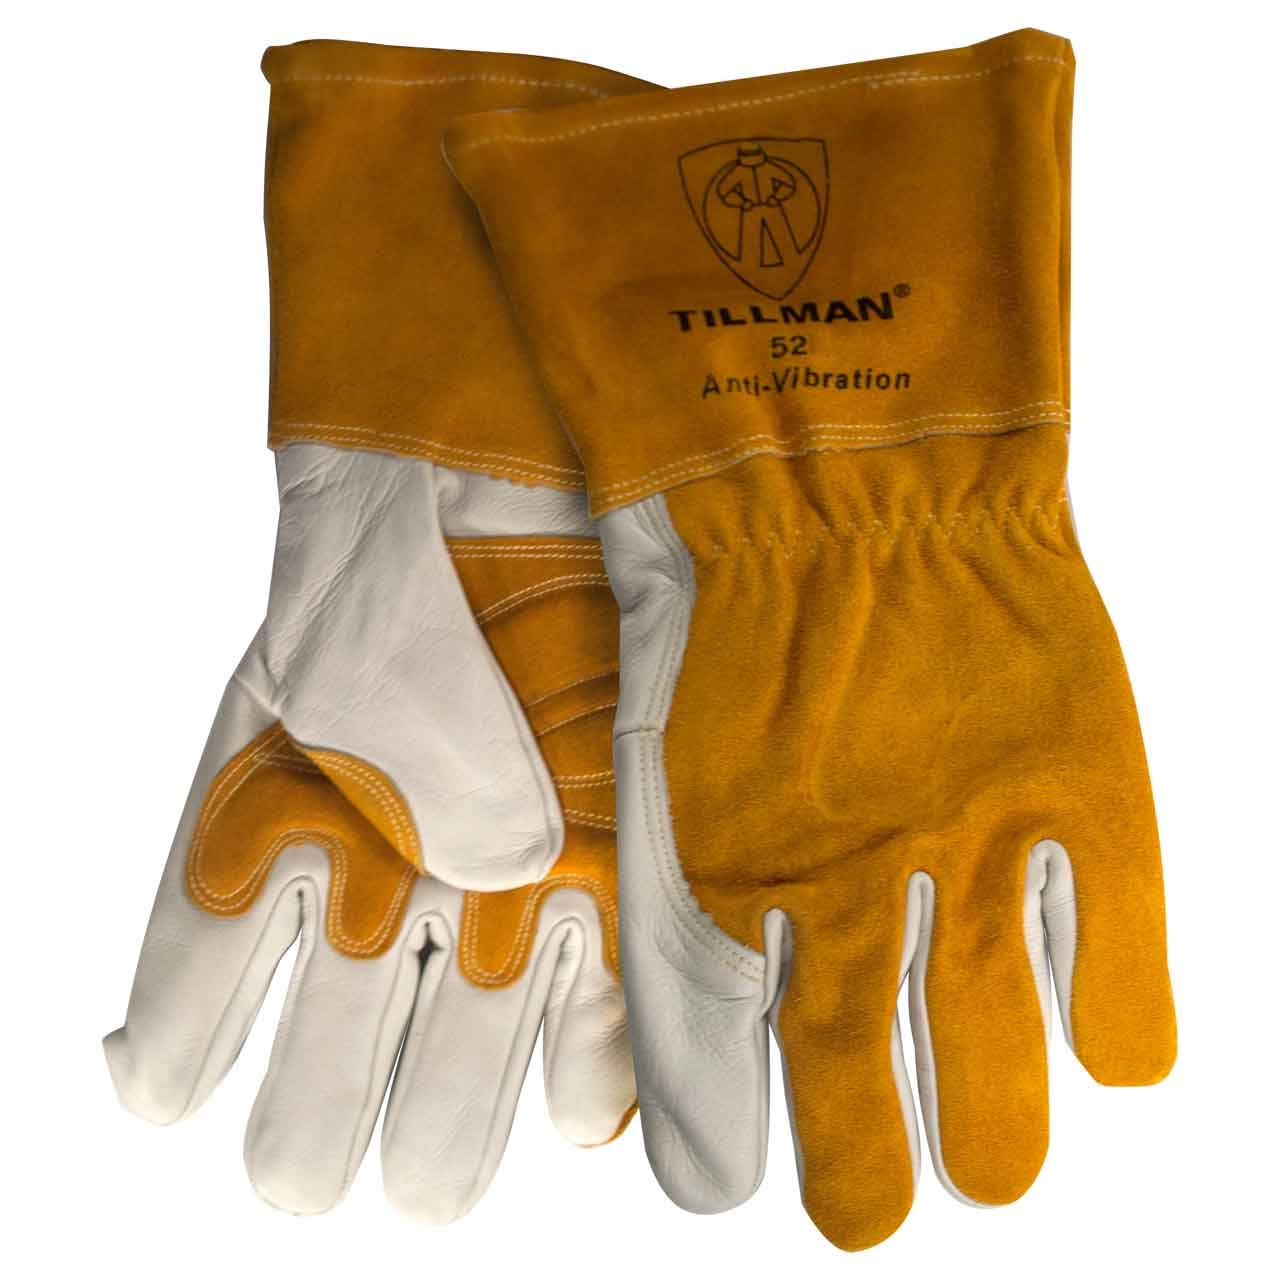 Tillman 52 Top Grain Cowhide Anti-Vibration MIG Welding Gloves, Medium